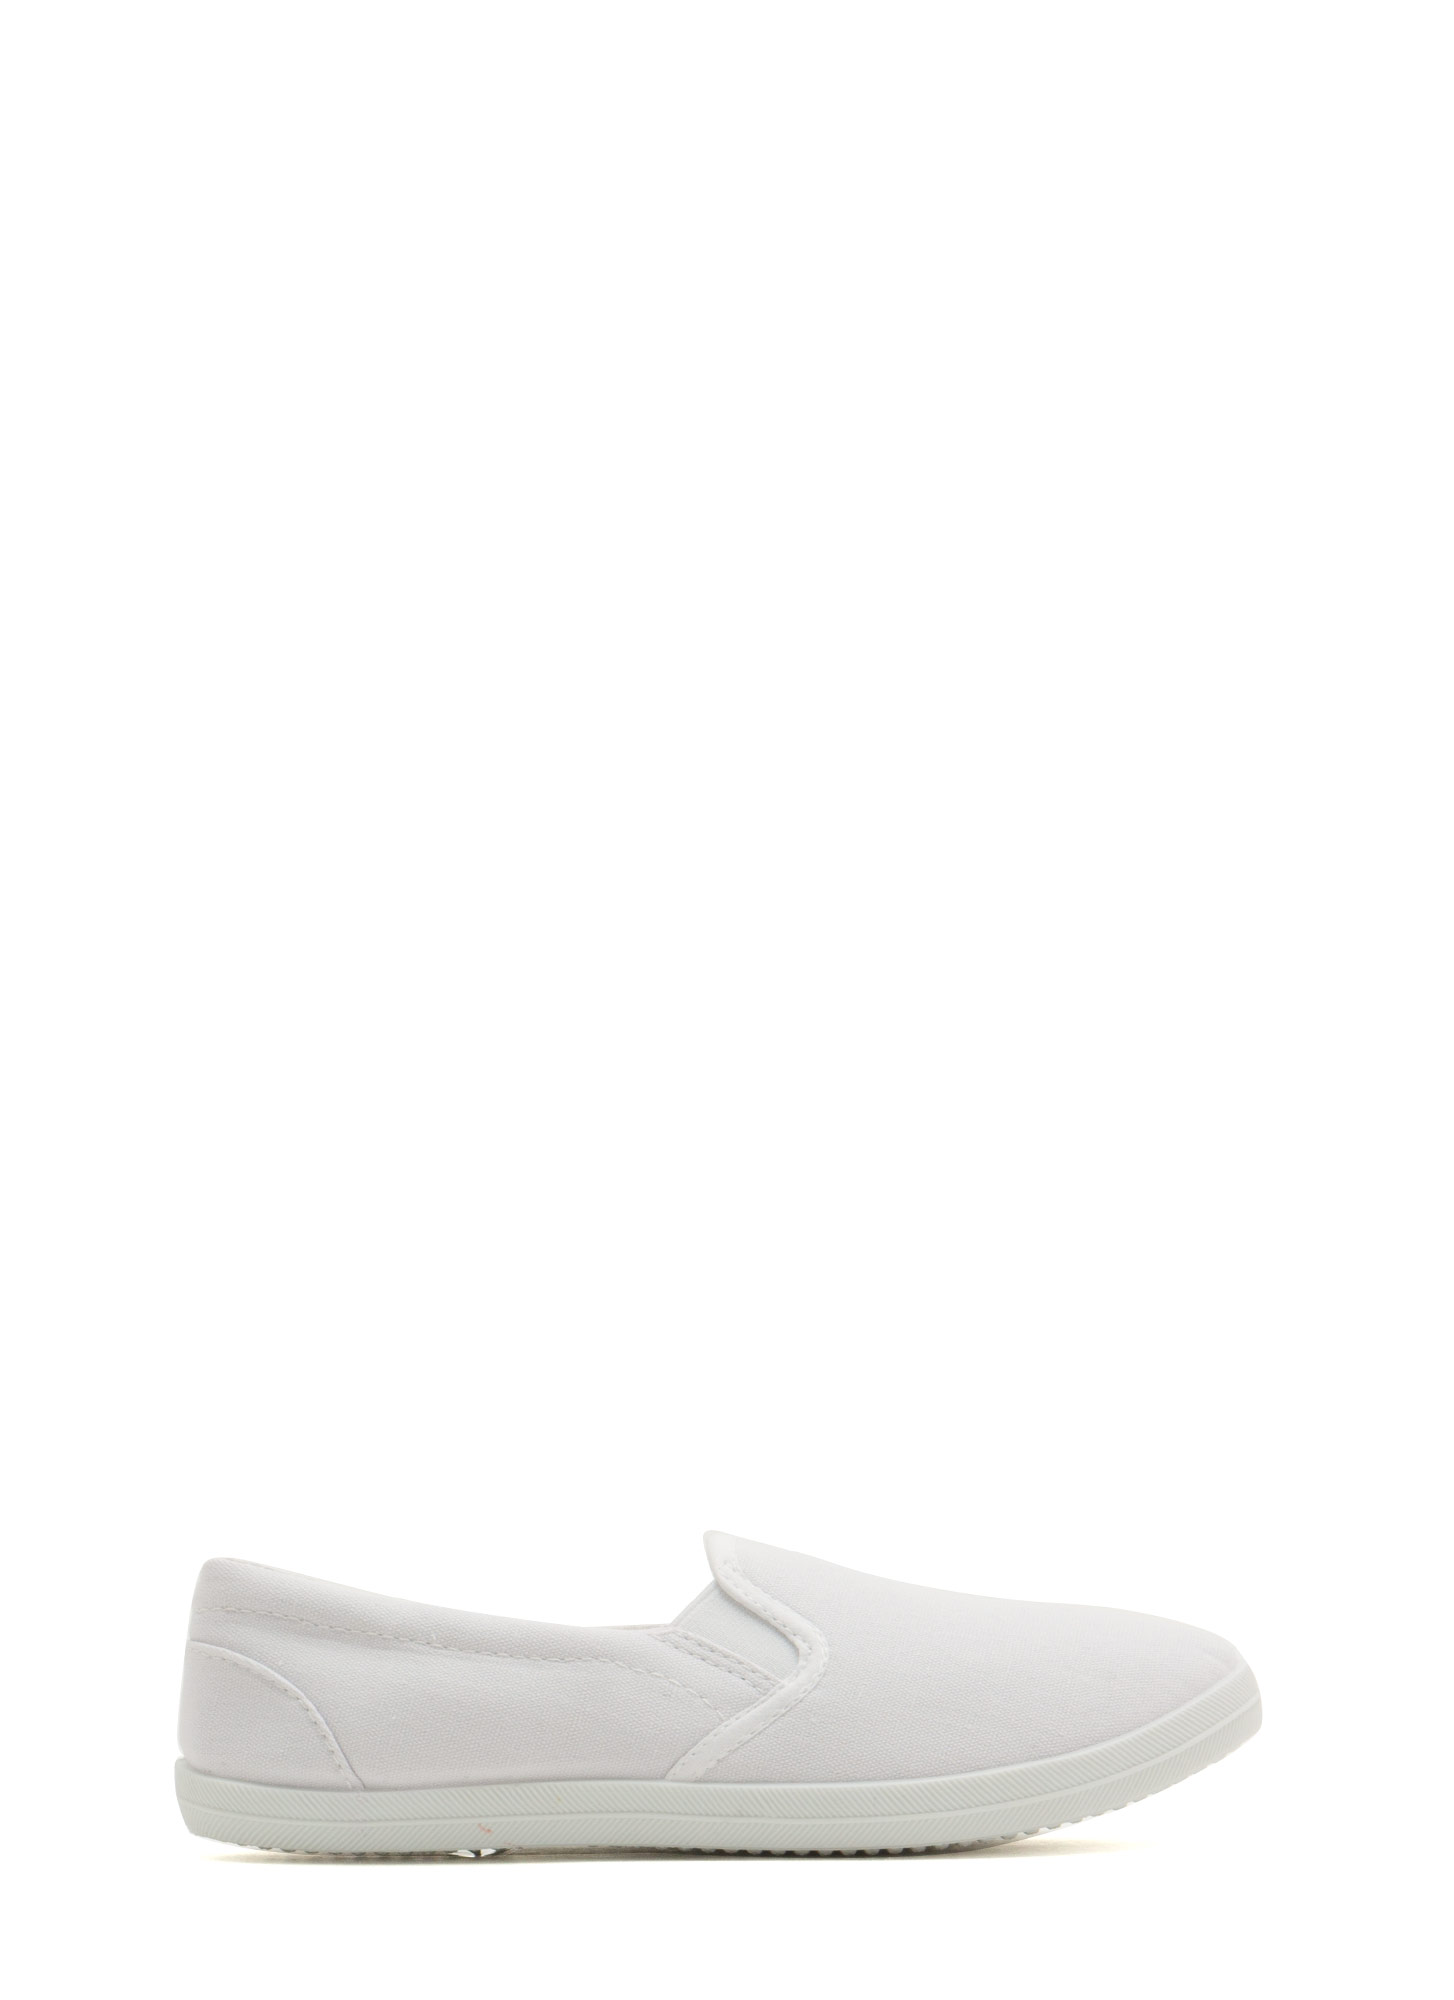 Basic Solid Canvas Skimmers WHITE (Final Sale)